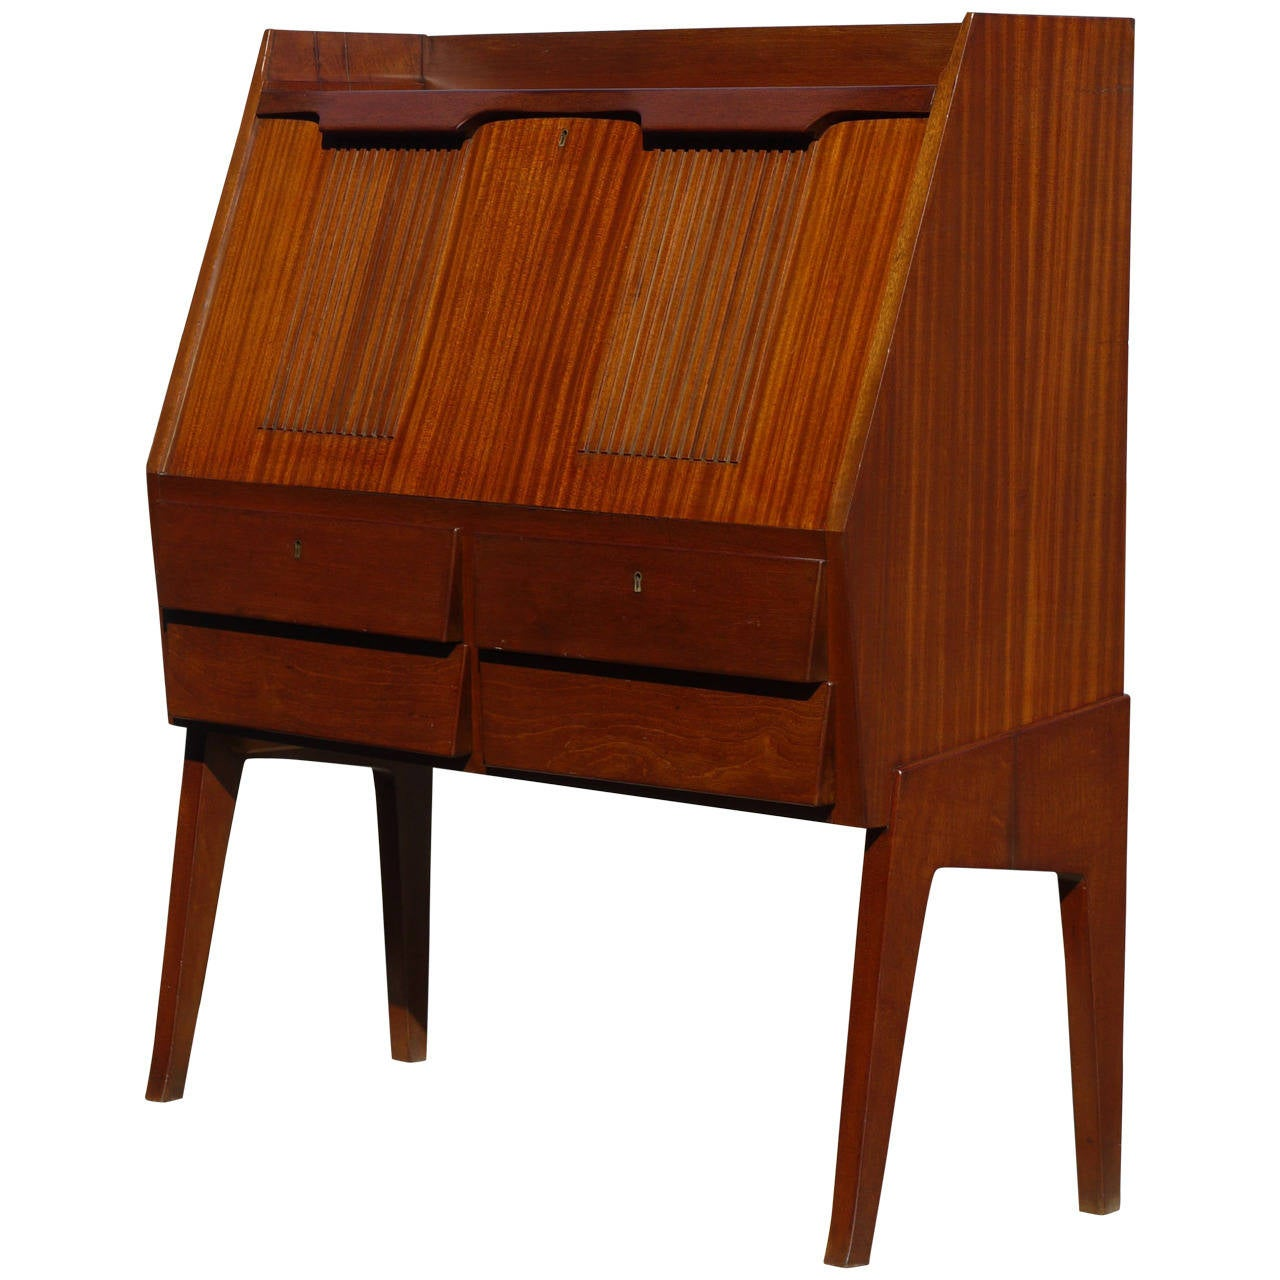 Spectacular italian modernist drop front desk for sale at